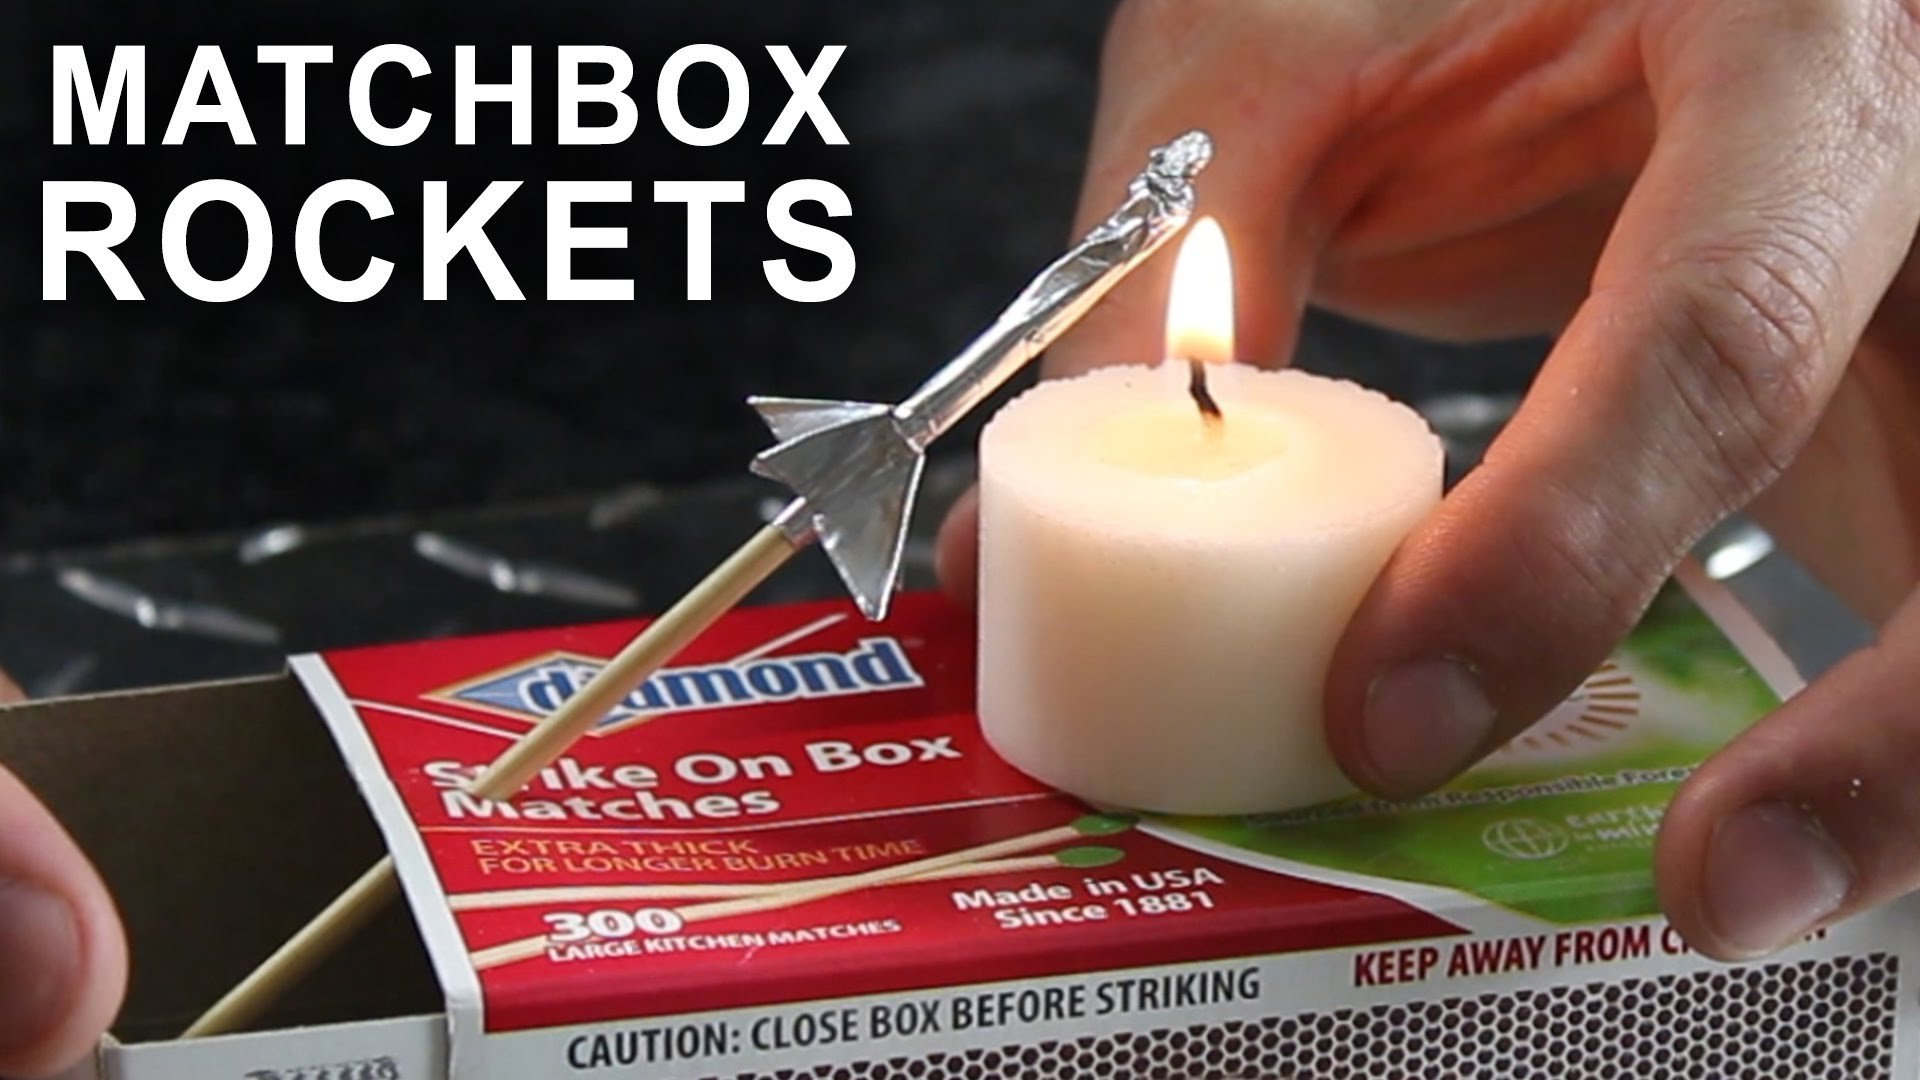 Matchbox Rockets Template How to Make A Matchbox Rocket Launching Kit top Tips Feed